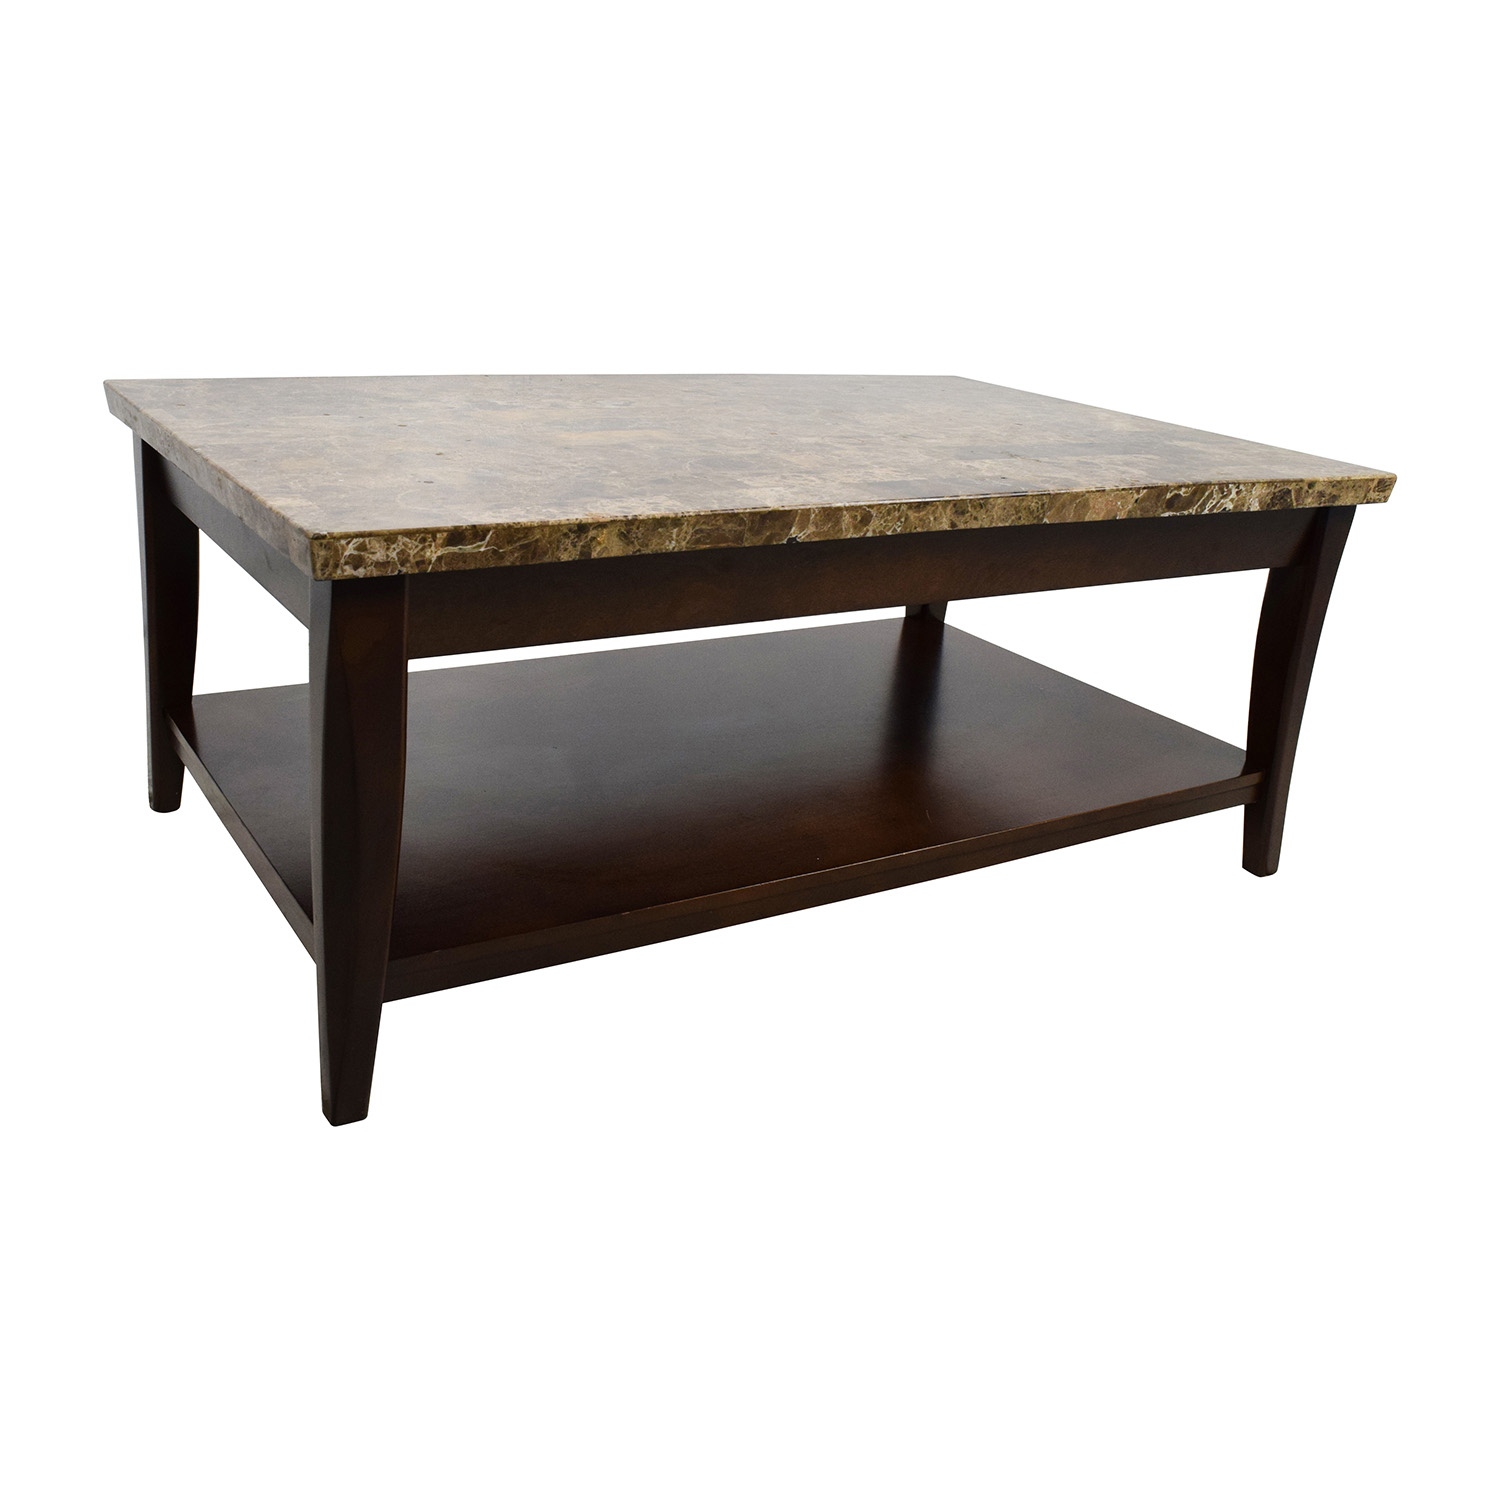 Marble Wood Coffee Table Rascalartsnyc